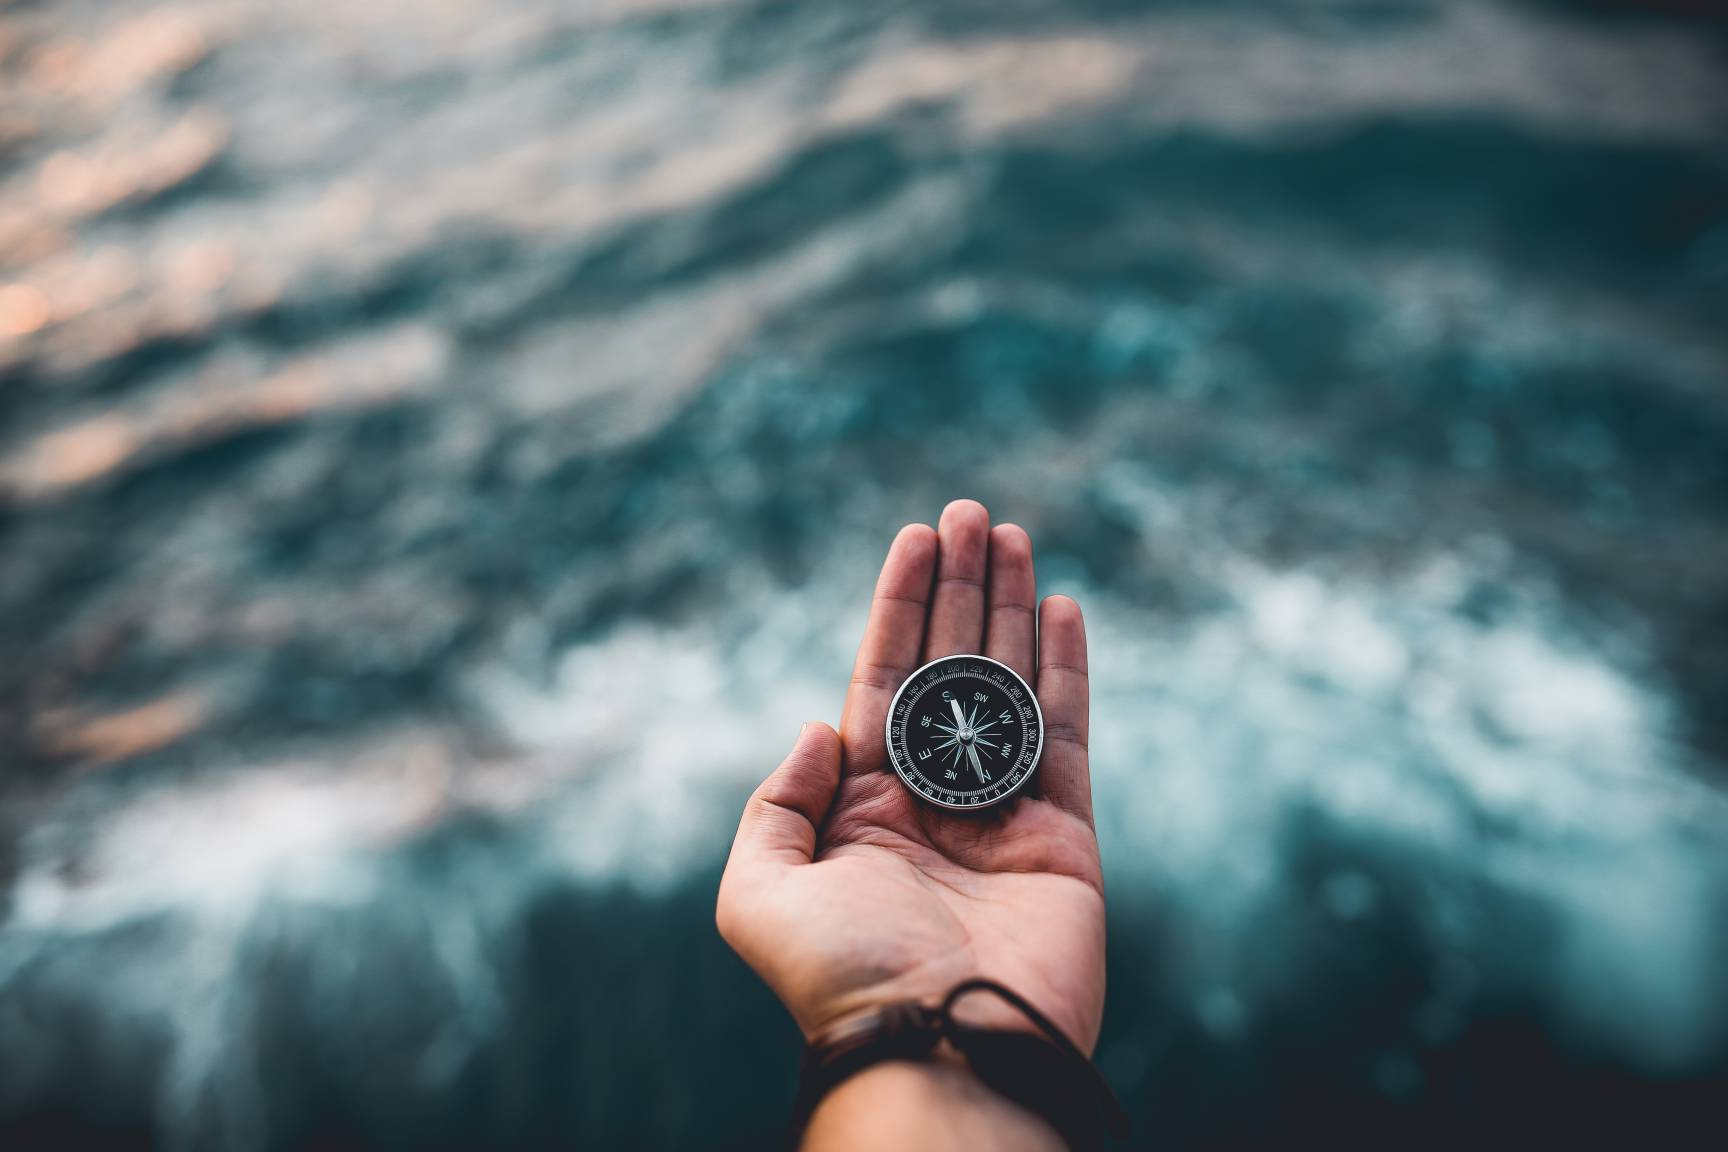 Man holding a compass in front of an ocean tide